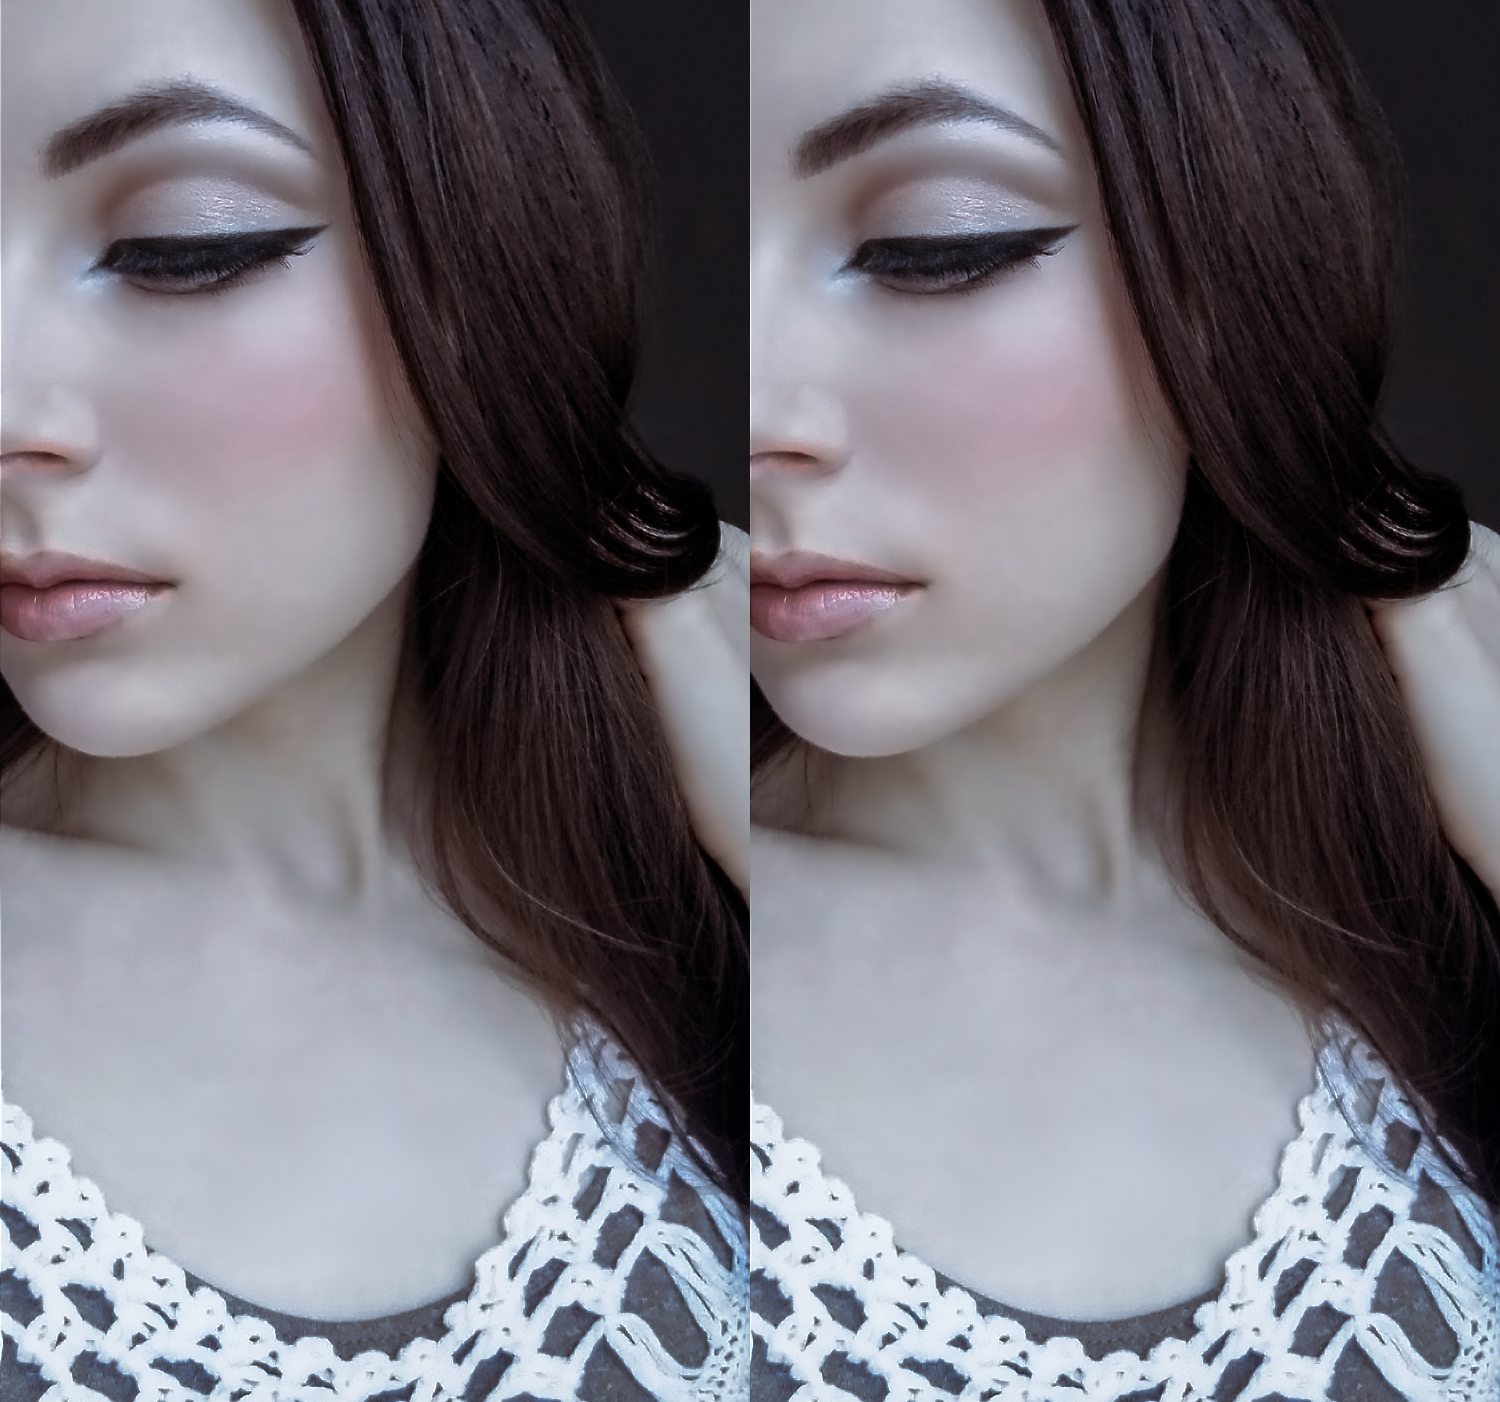 a portrait of a woman with doll-like makeup look